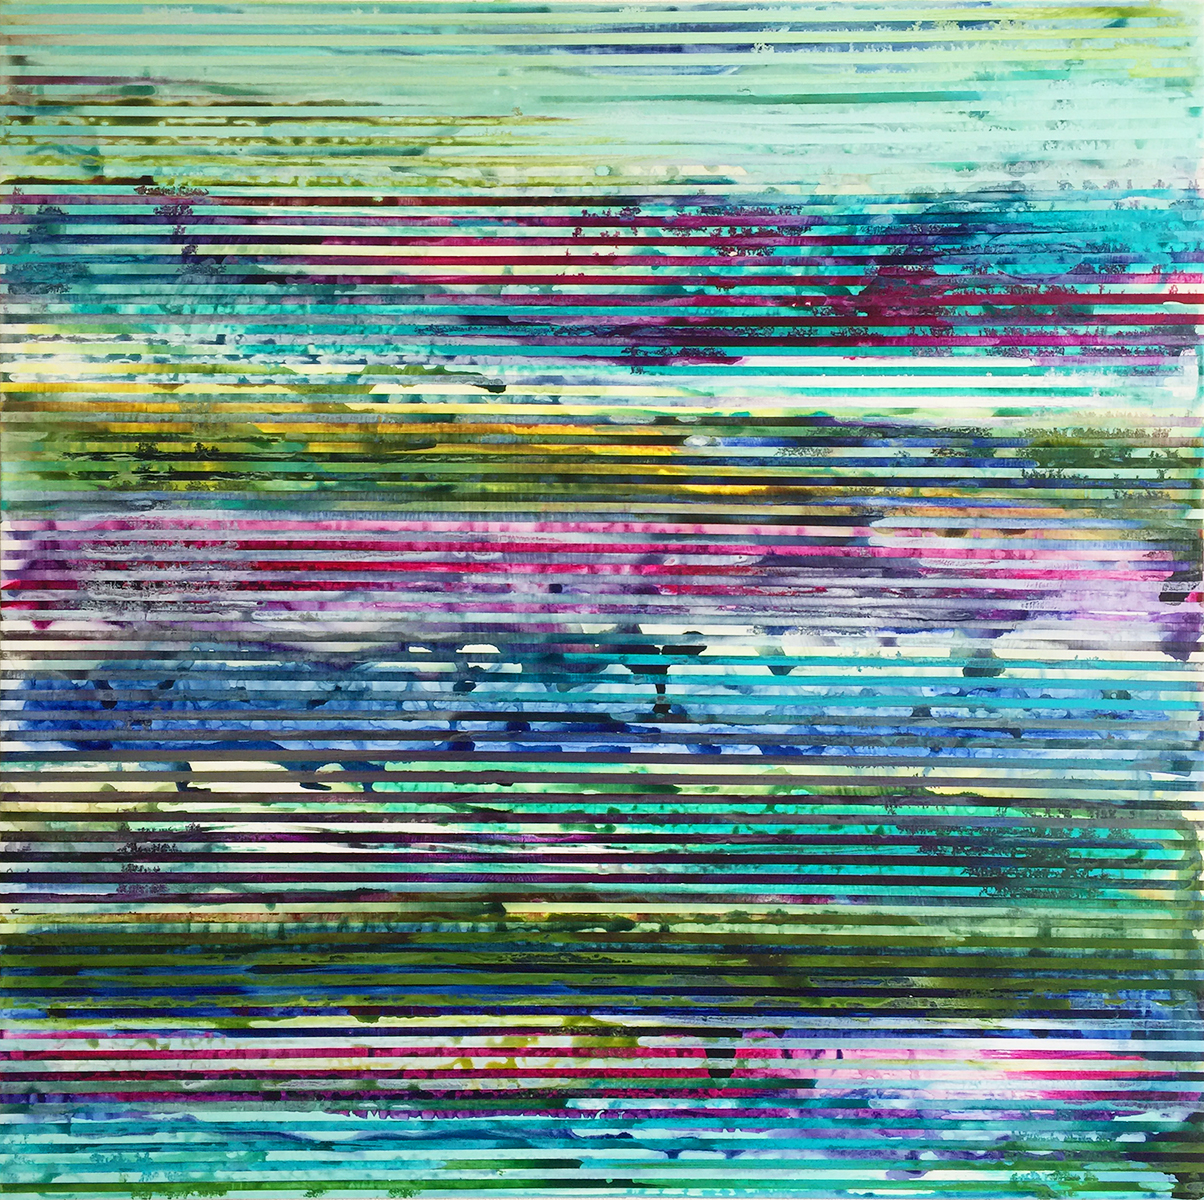 Weaving Landscape_30 x 30 inches_1A